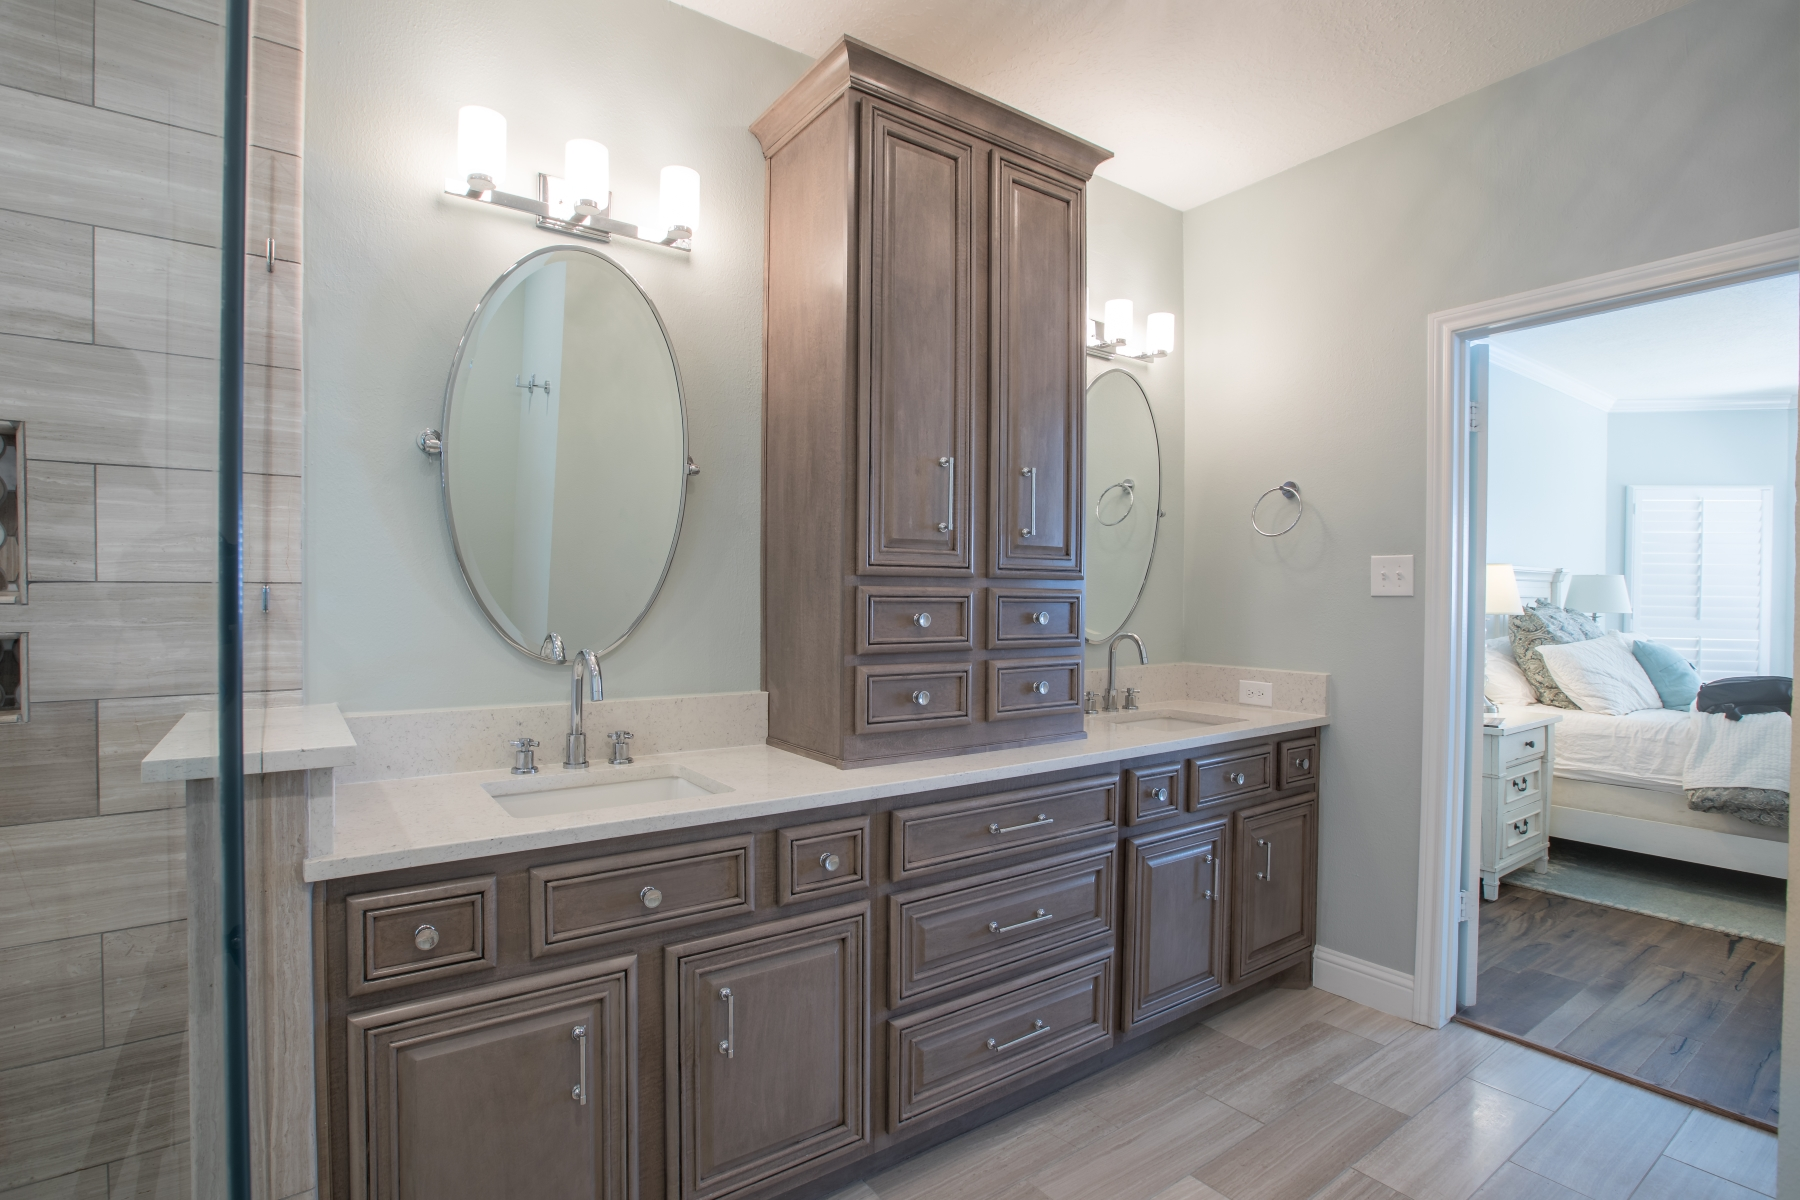 bathroom remodel - cabinets